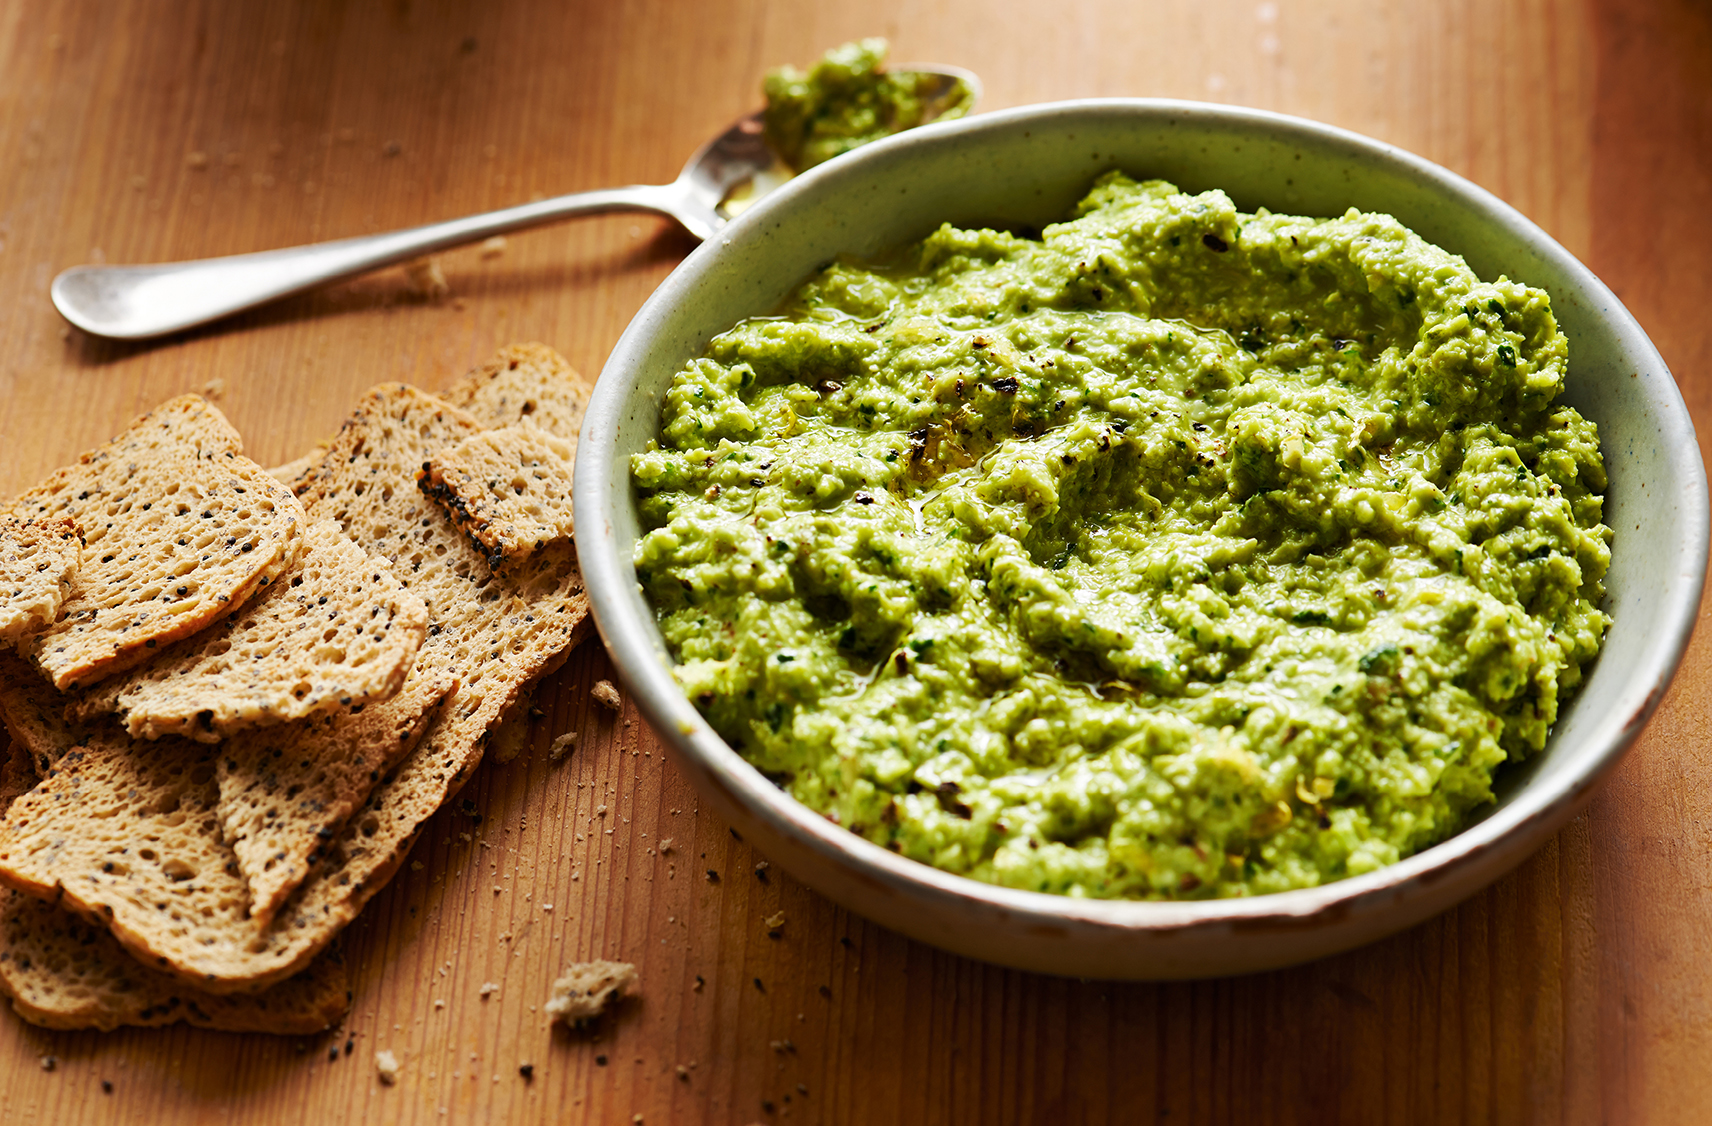 green hummus served in a small grey bowl with slices of dry toast on the side for dipping